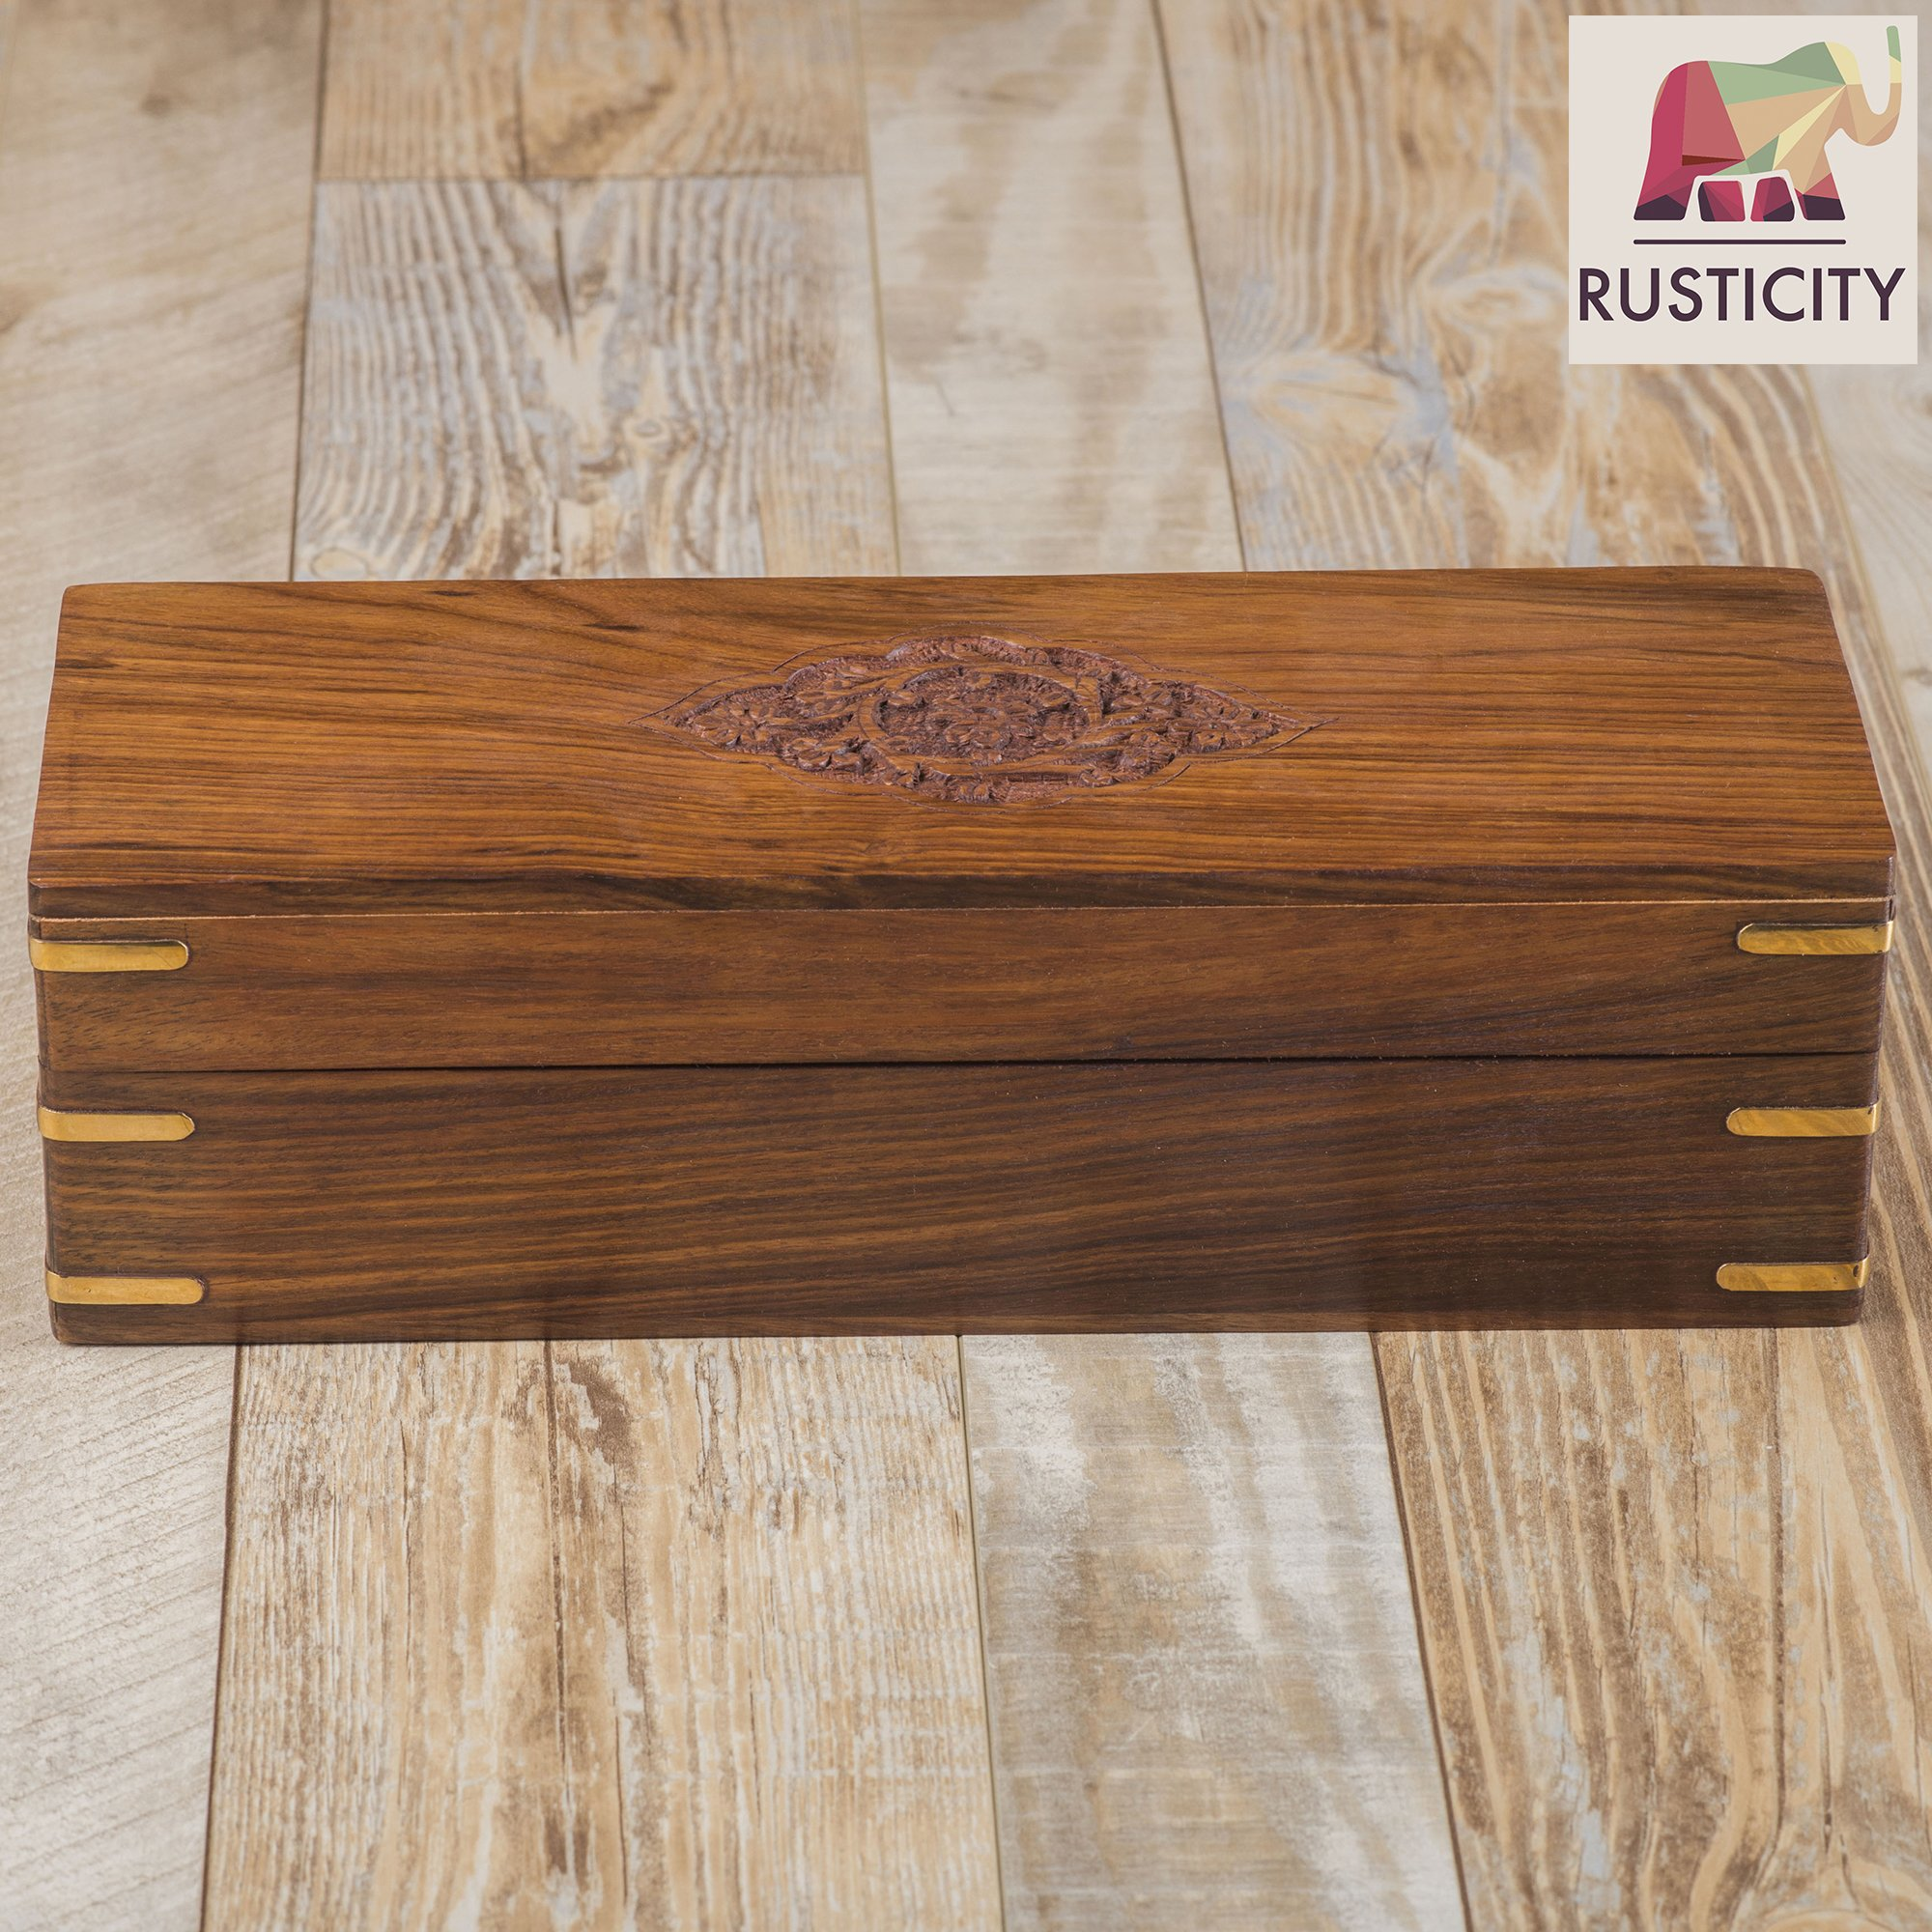 Rusticity Wooden Tea Box/Spice Organizer with Lid - 8 Slots | Handmade | (12x4.5 in) by Rusticity (Image #2)